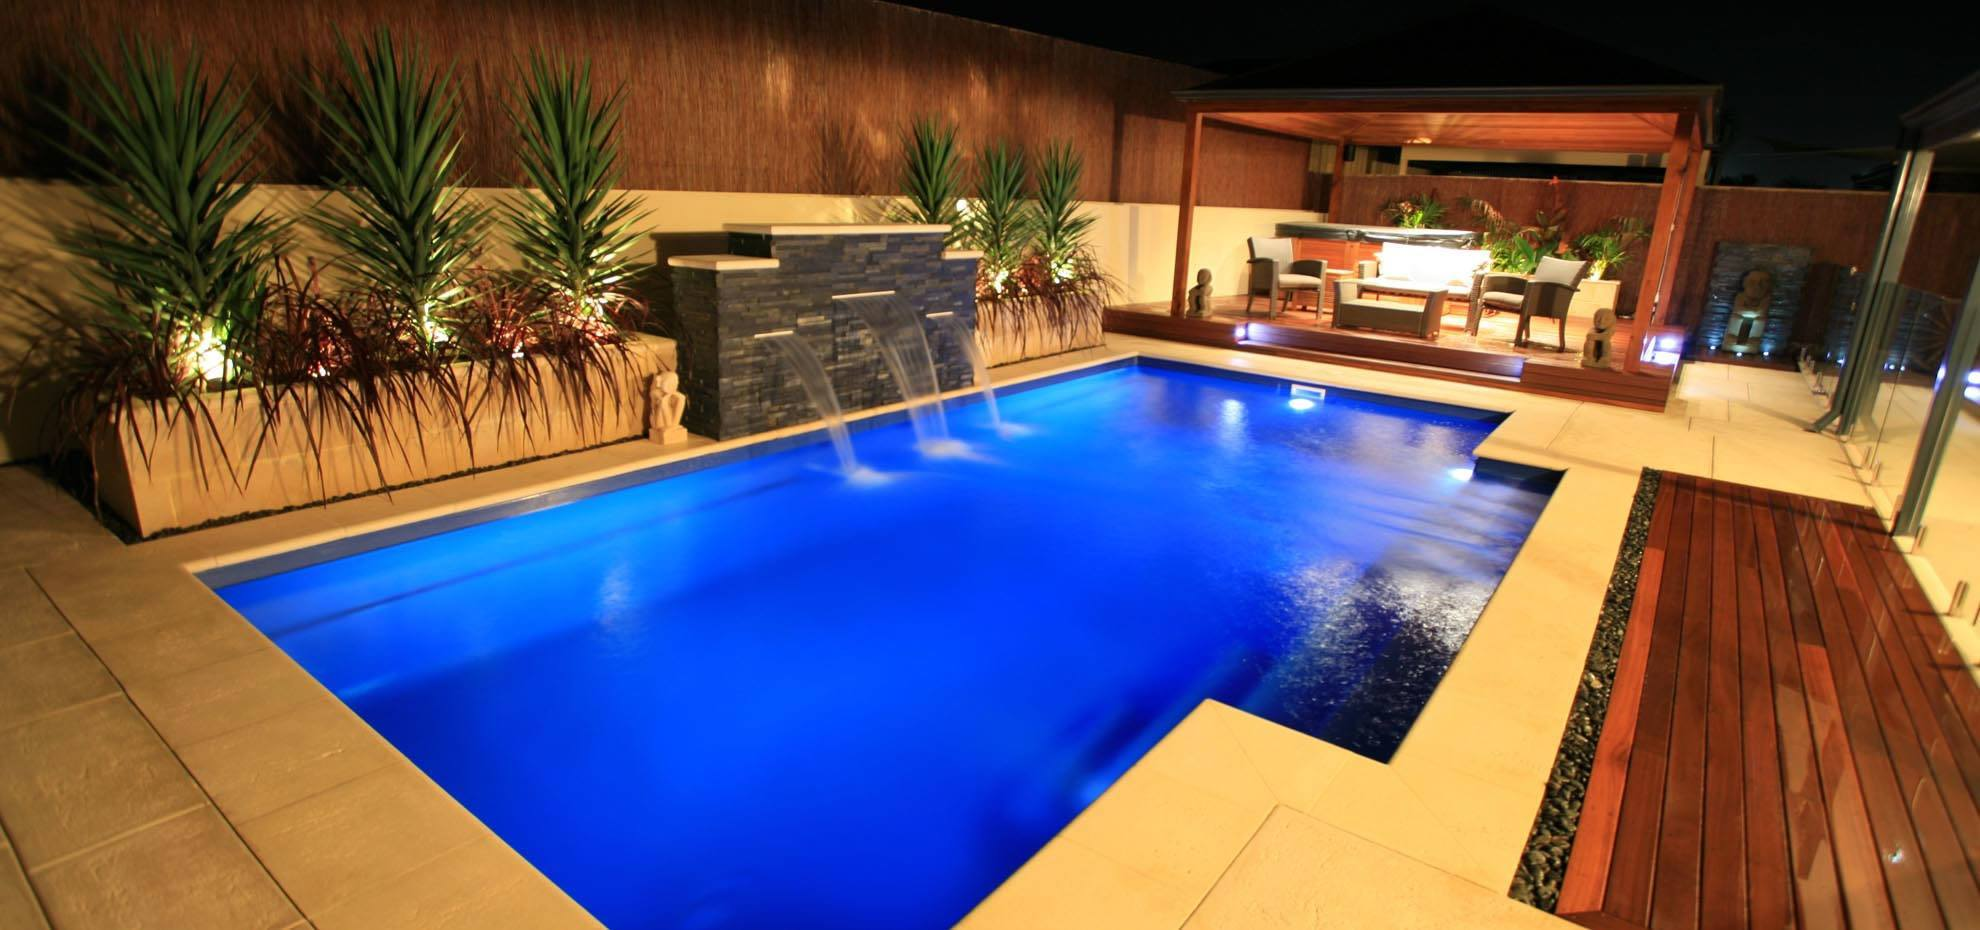 Elegance design fibreglass pool with water feature and coping by Leisure Pools